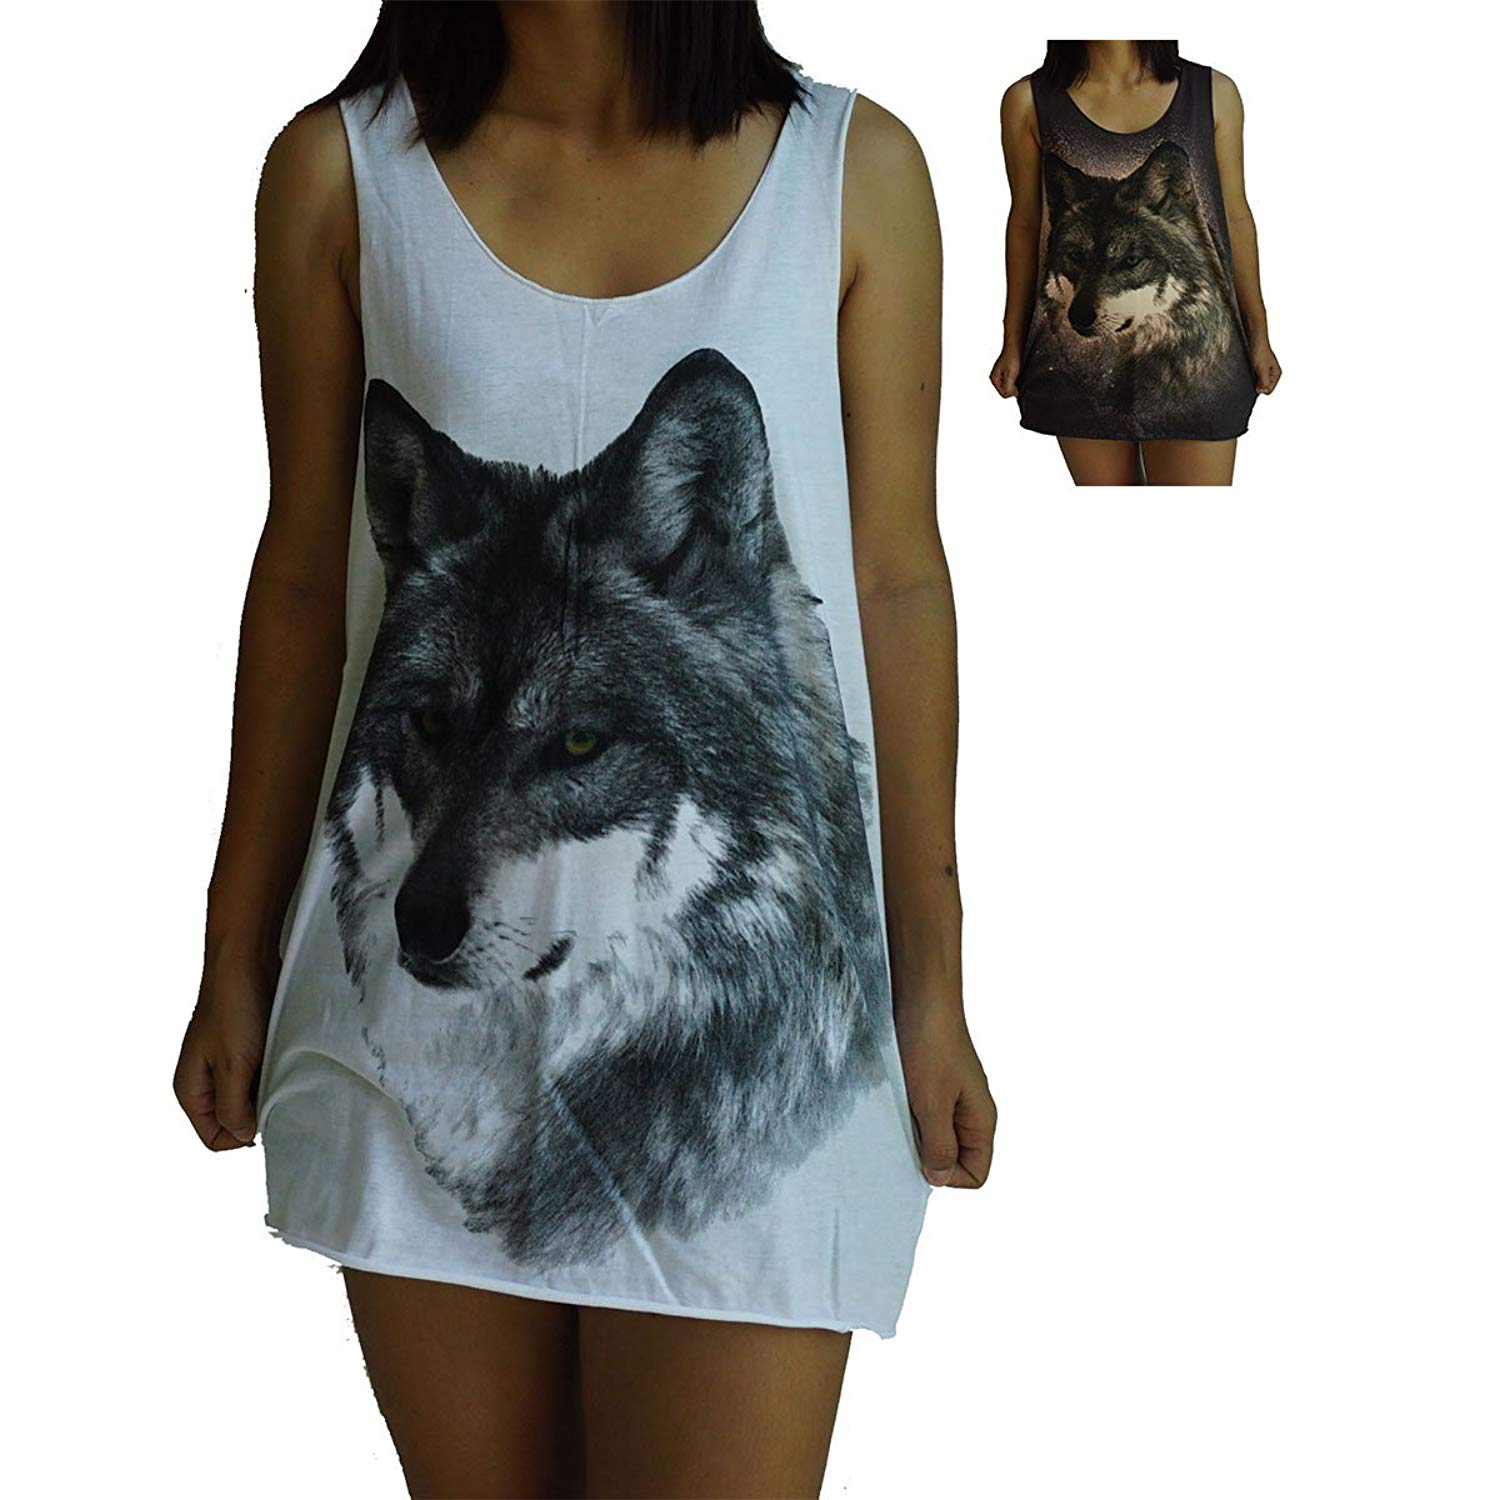 Unisex Wolf Vest Tank-Top Singlet Dress Sleeveless T-Shirt